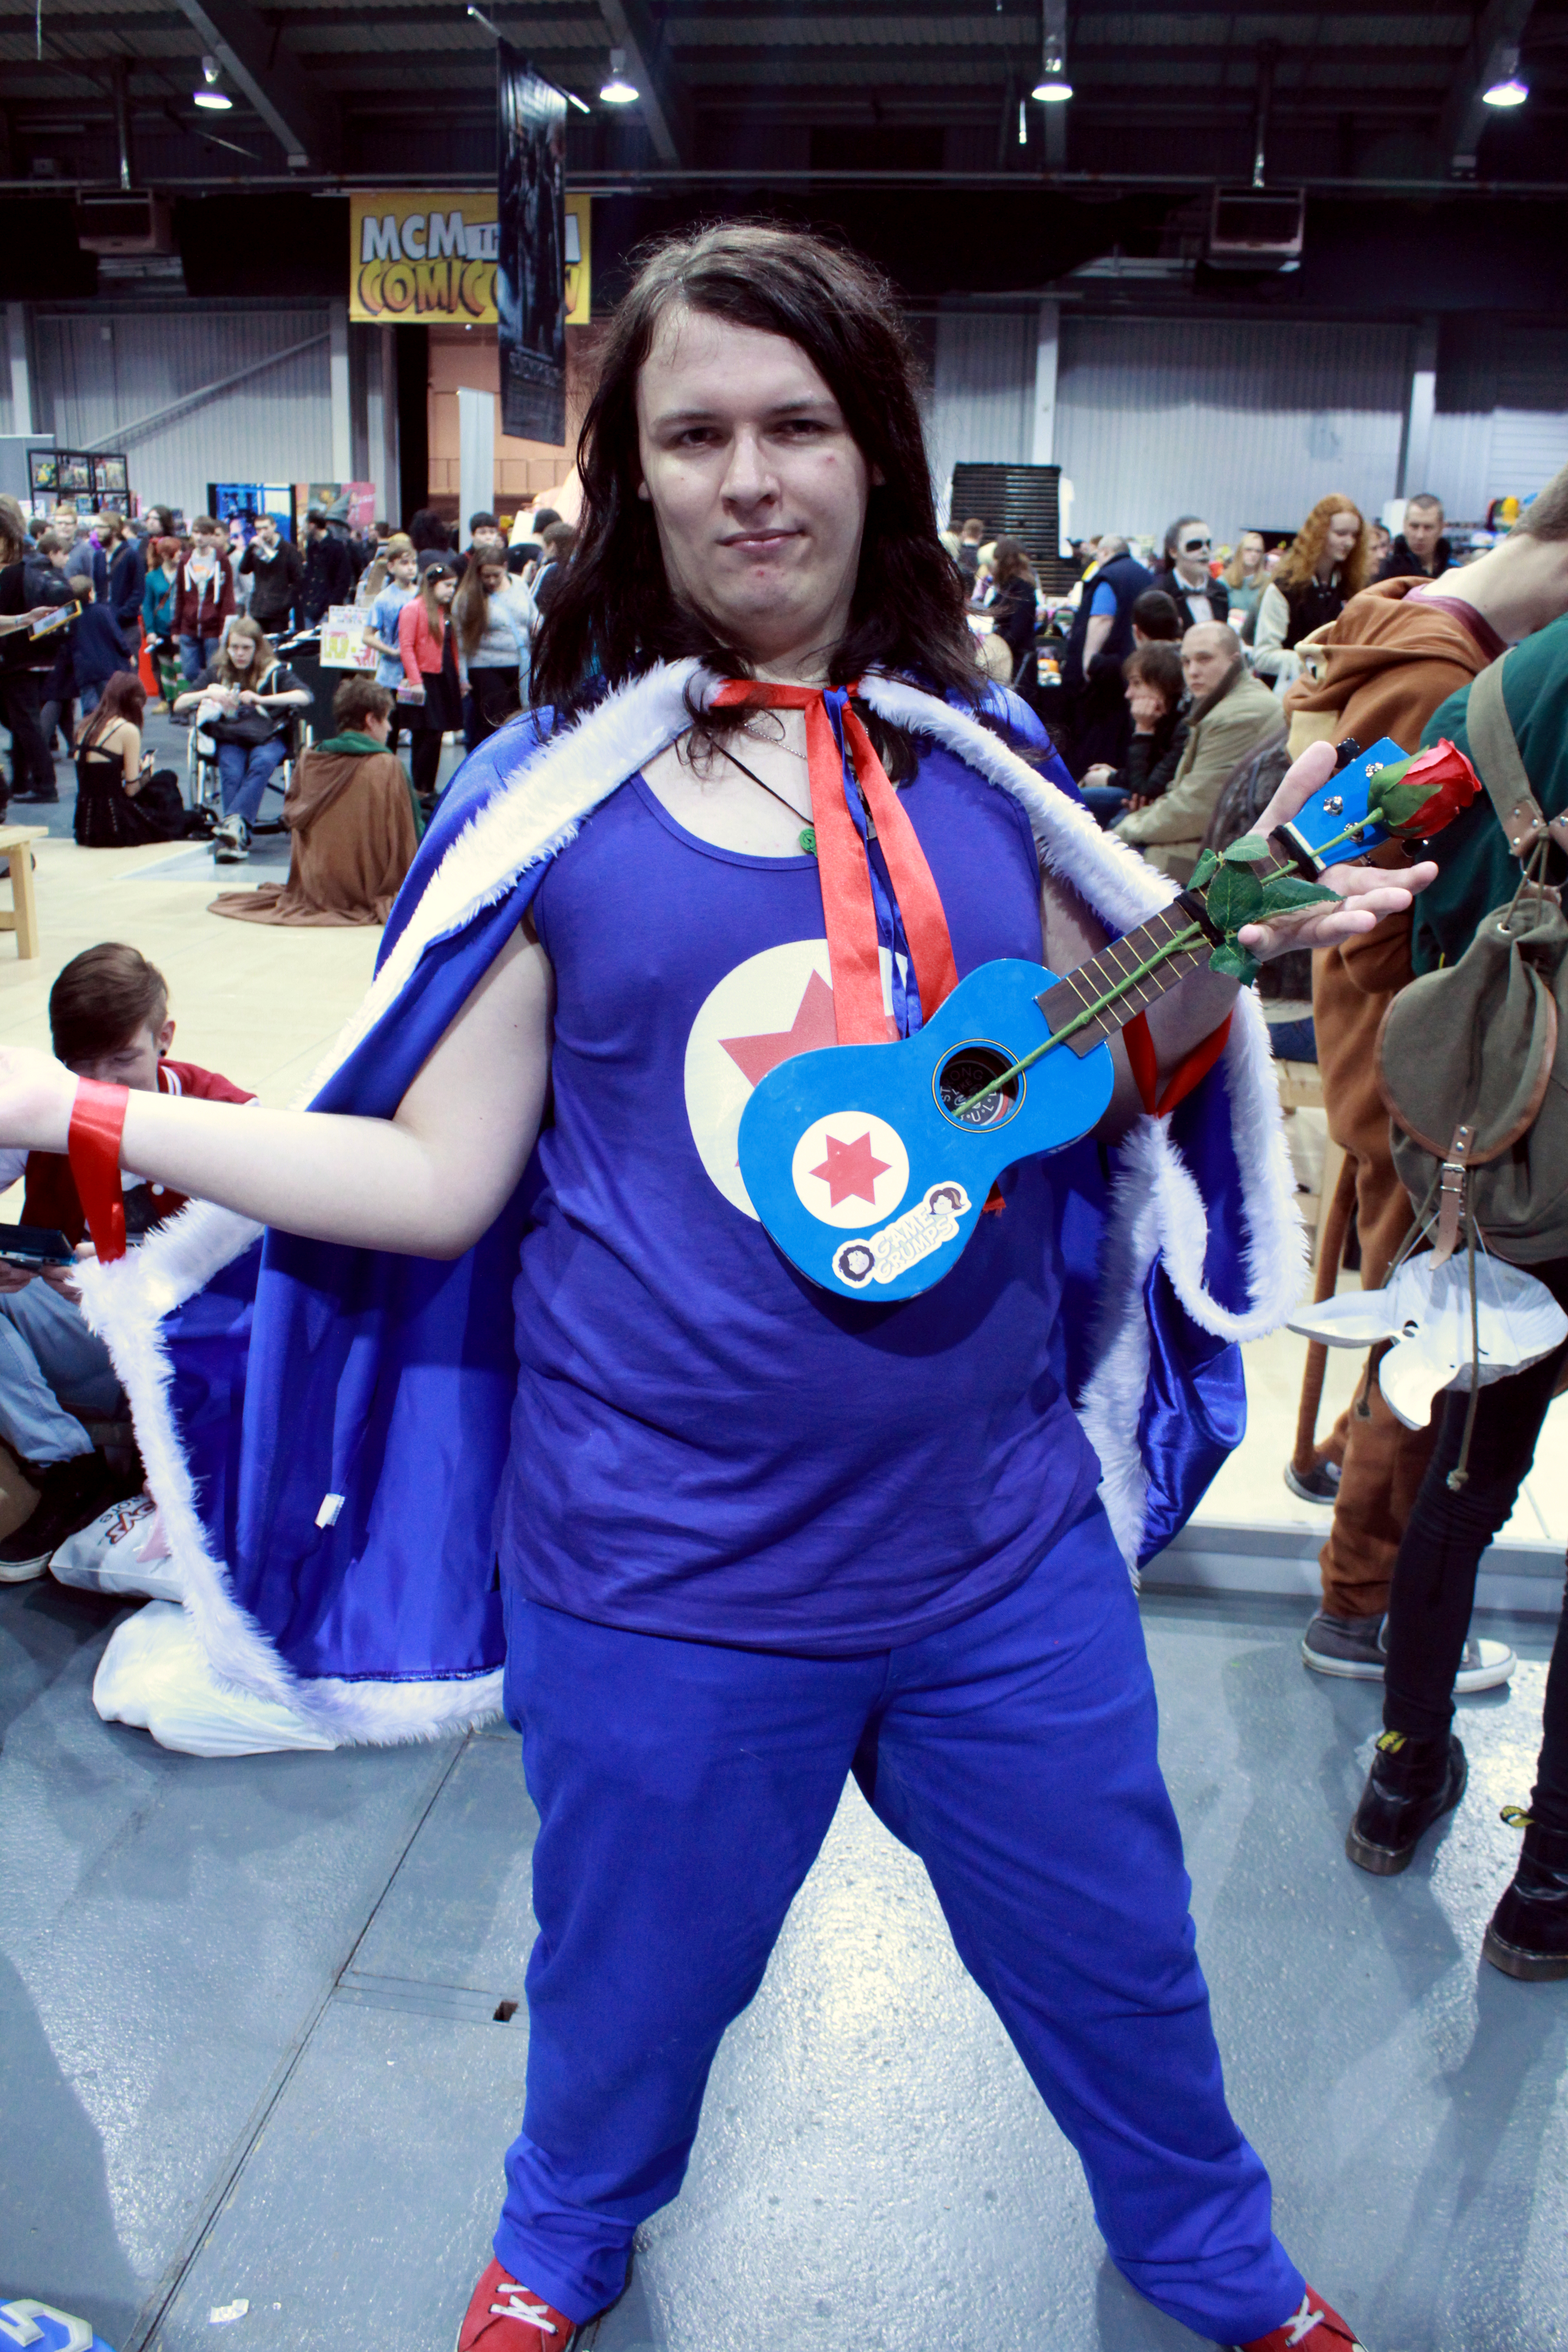 You are a Sexbang for the Ninja Party! MCM Midlands, Feb 2015